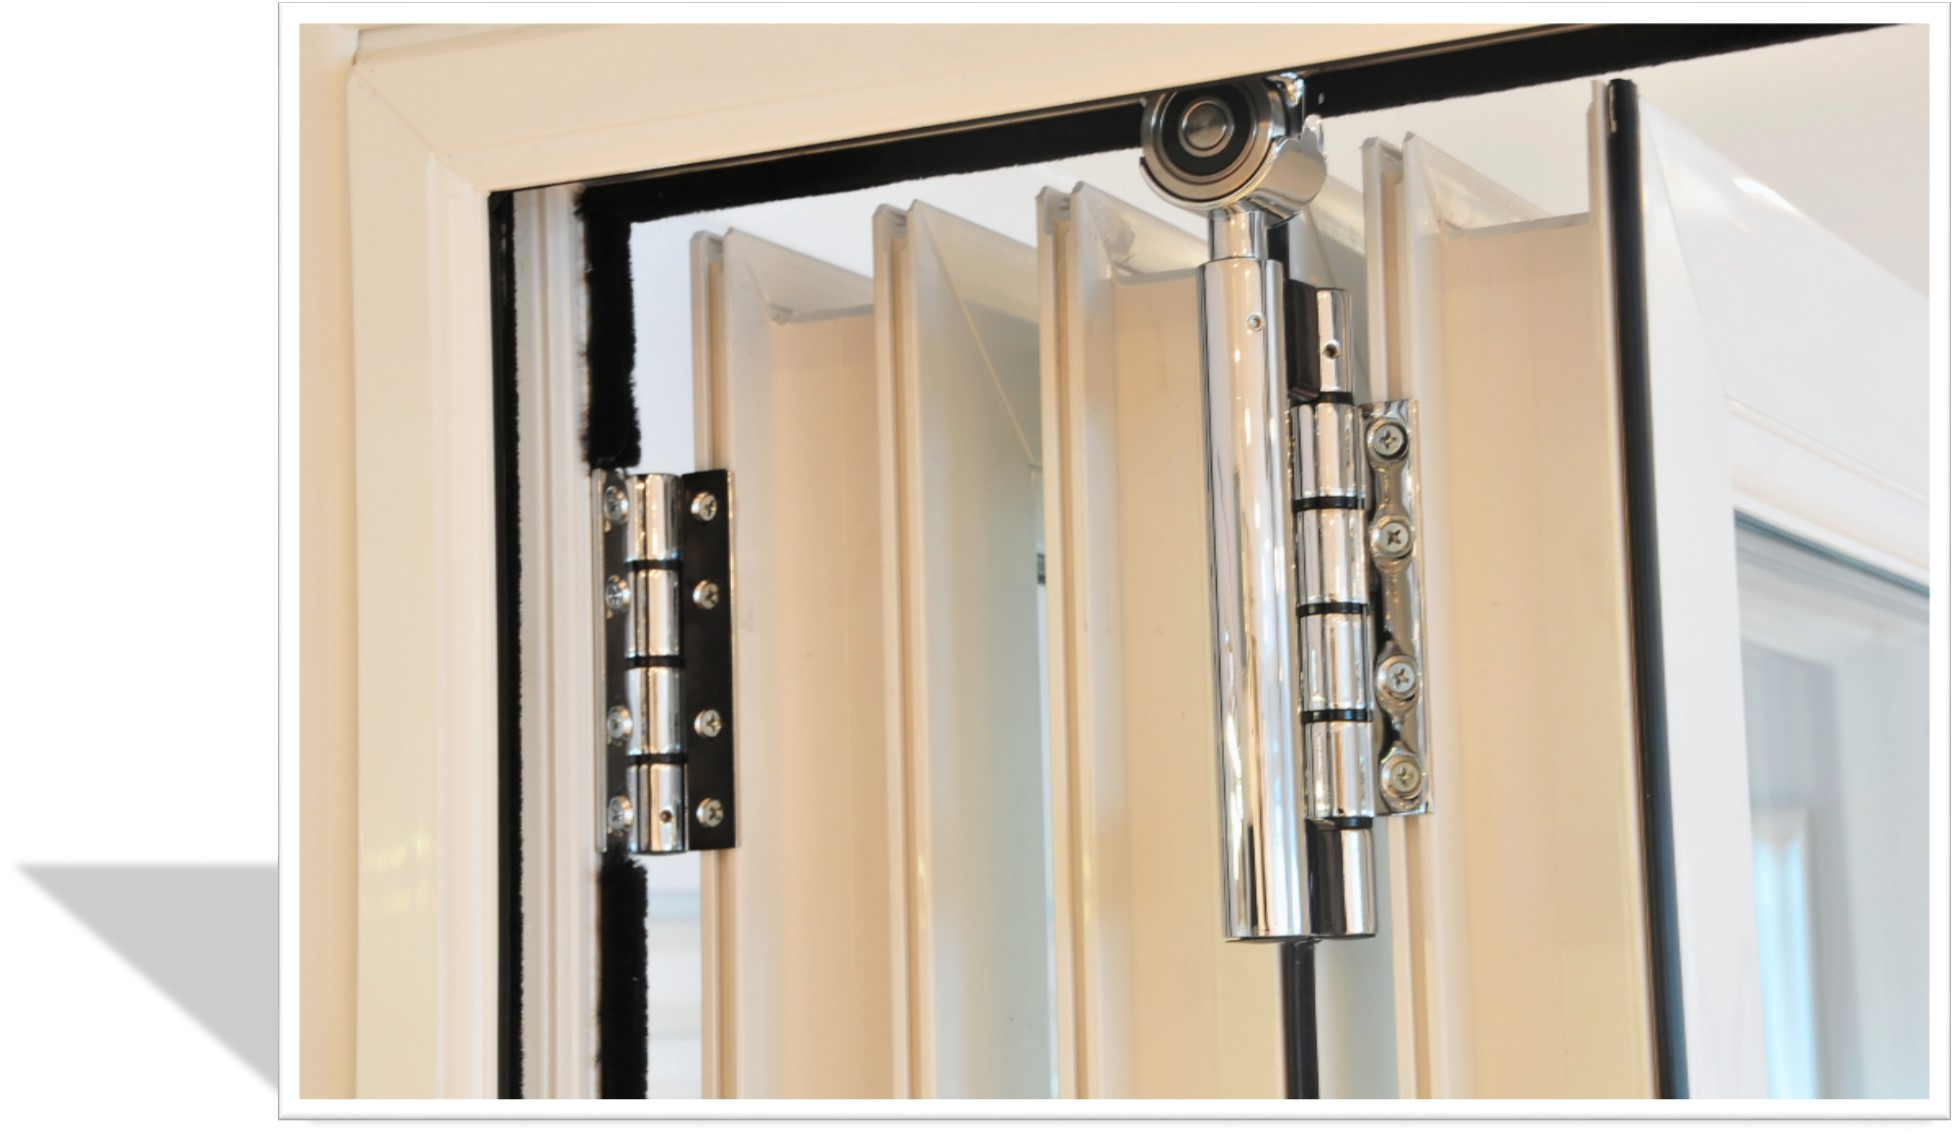 Folded door pvc folding door partition accordion door for Folding doors